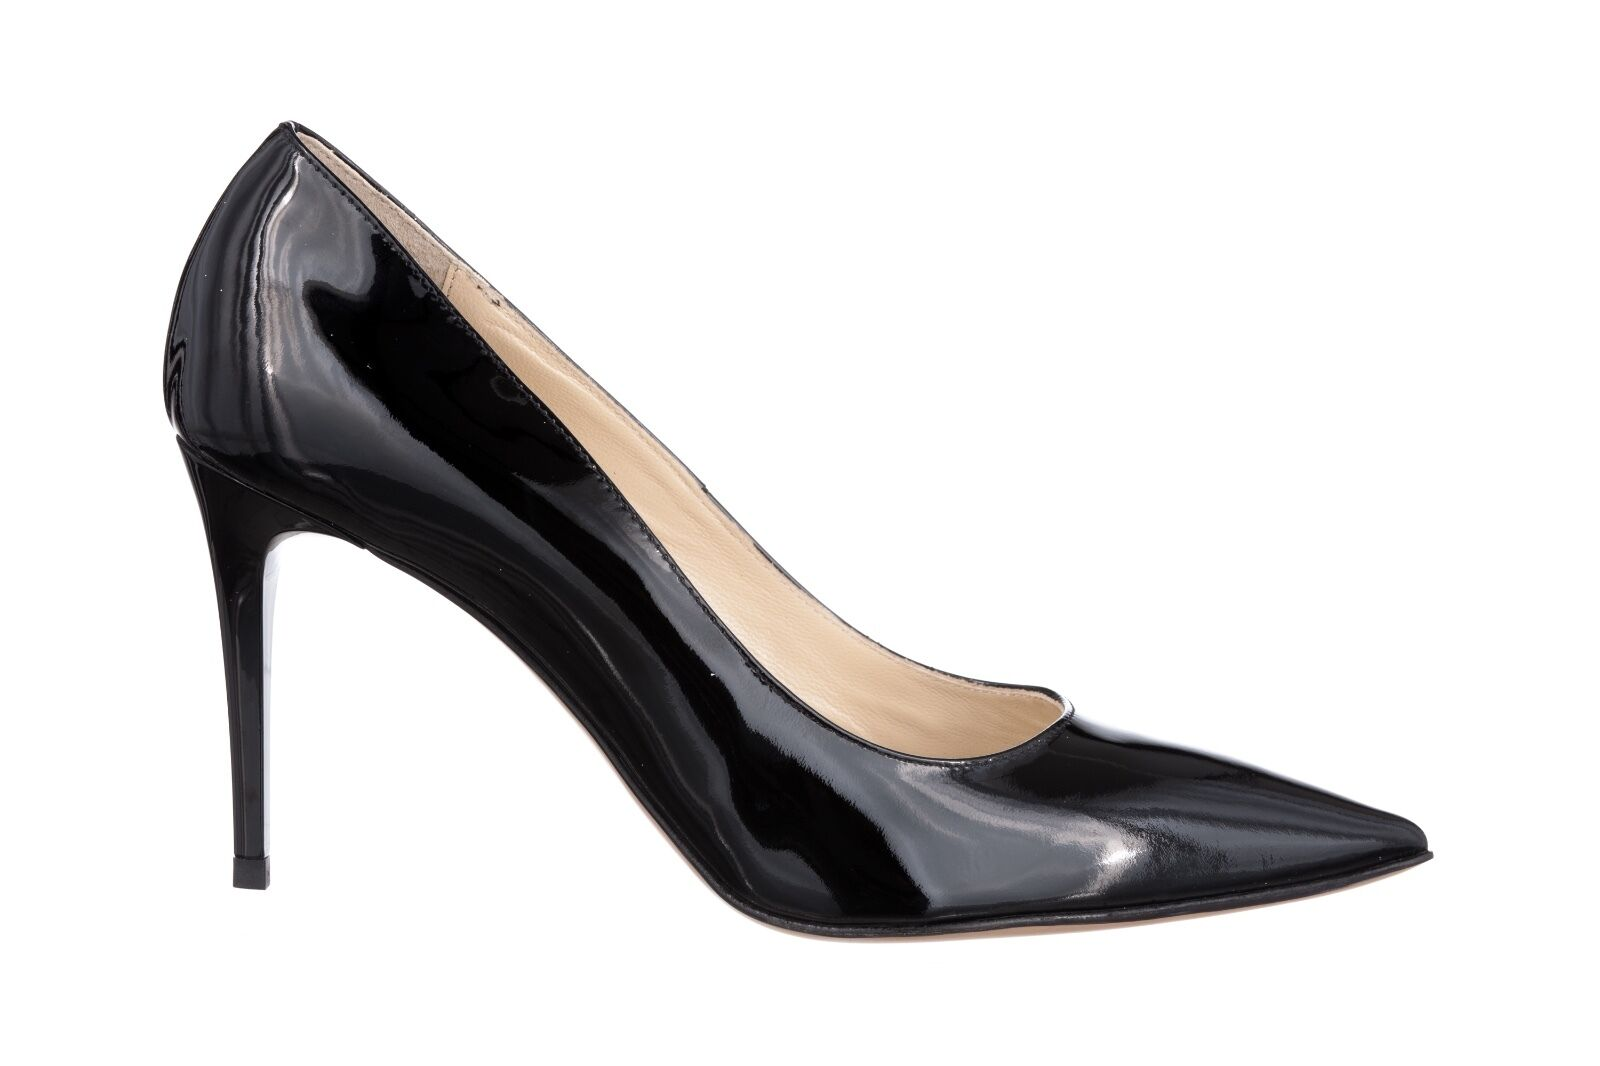 MORI MADE IN ITALY POINTY HIGH HEELS PUMPS DECOLTE SCHUHE LEATHER BLACK black 37